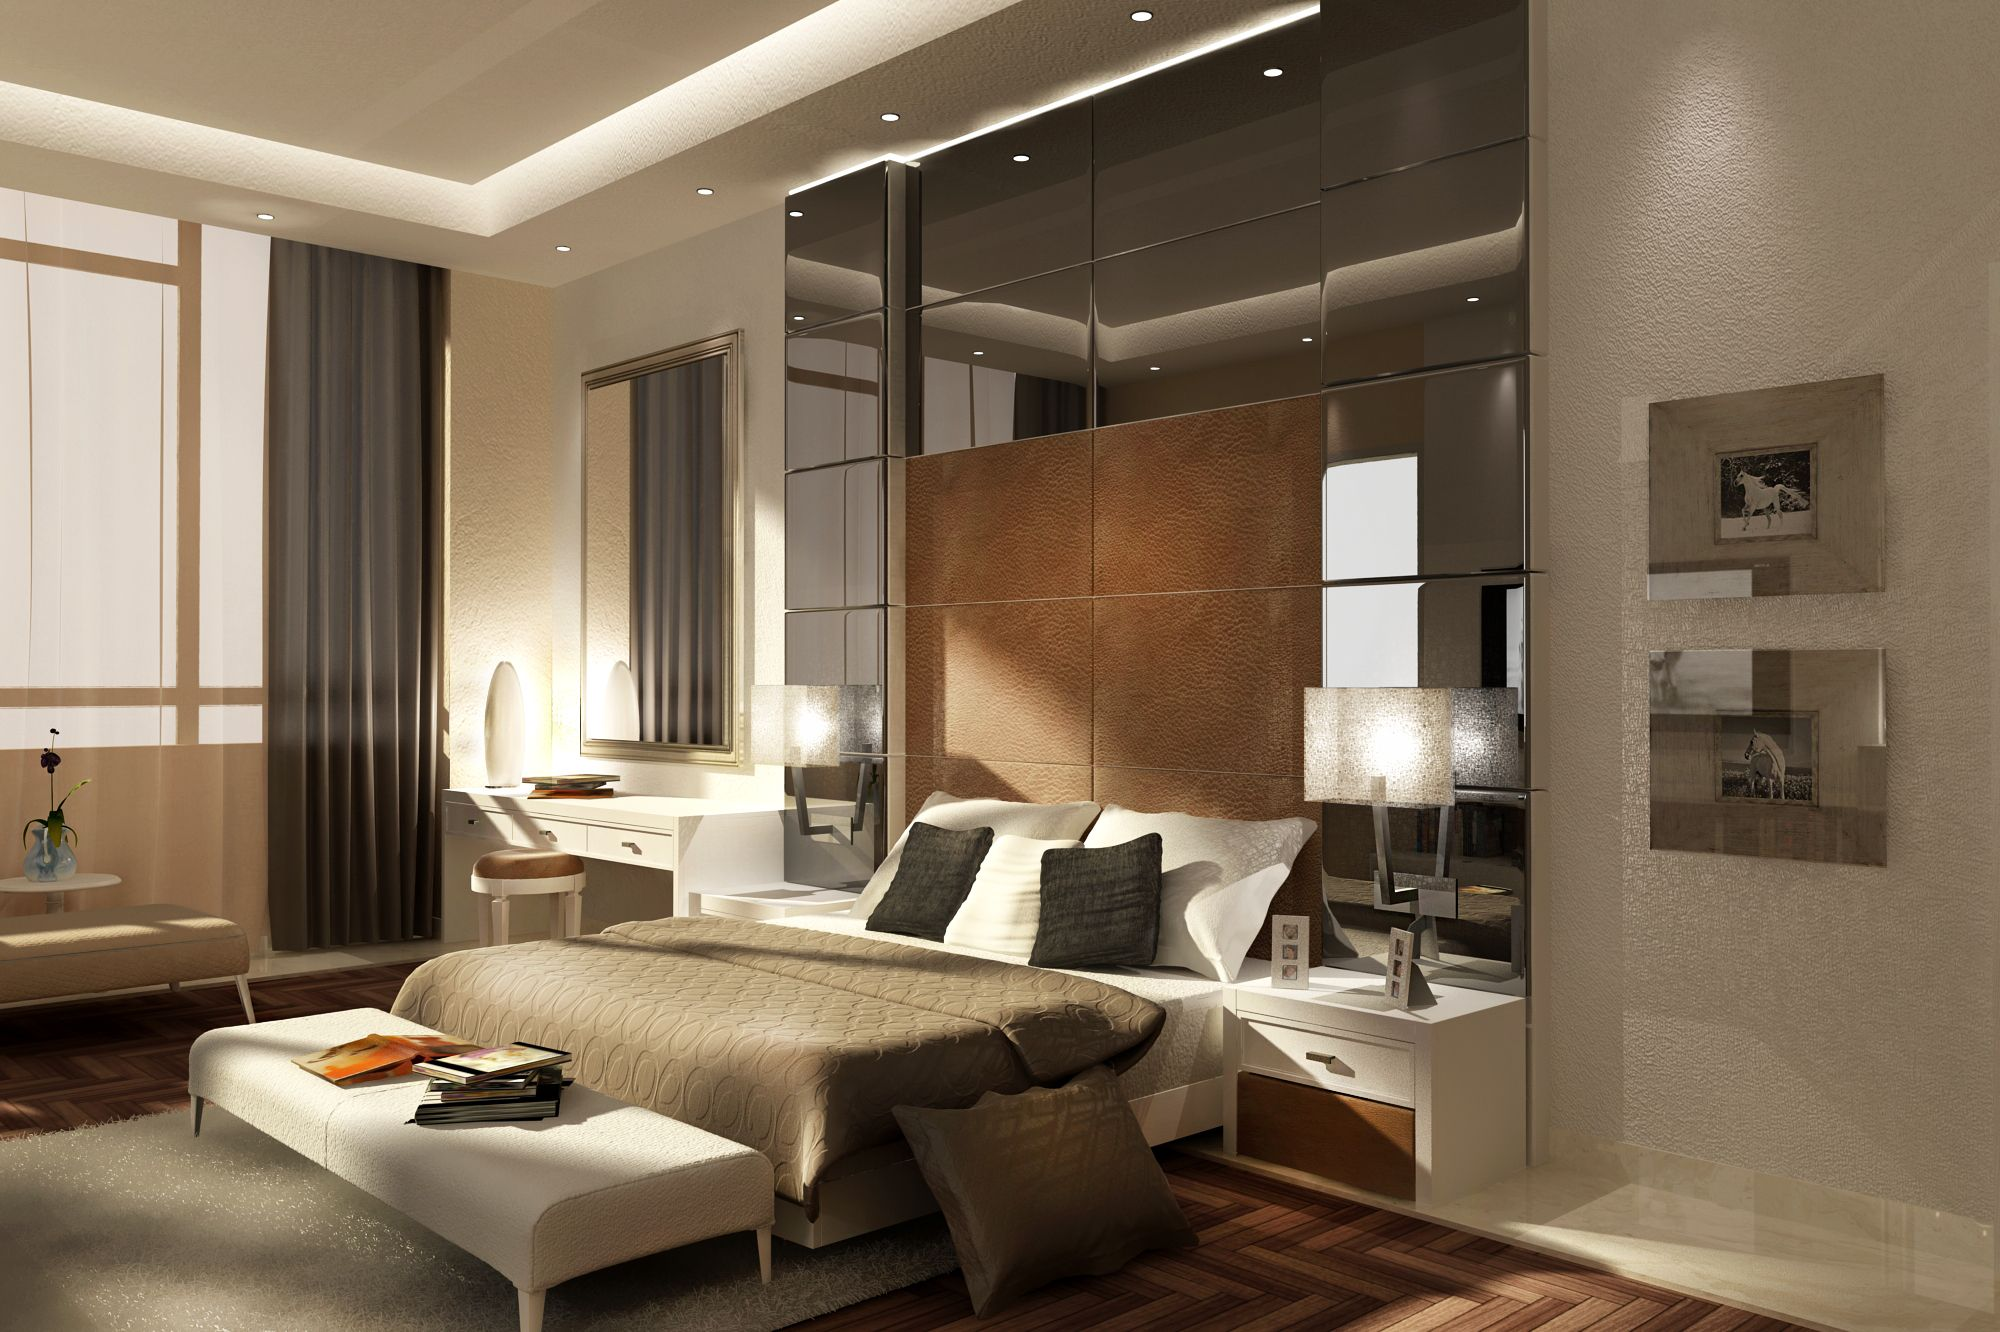 3d render 3d max interior design bedroom design modern for Modern master bedroom designs 2014